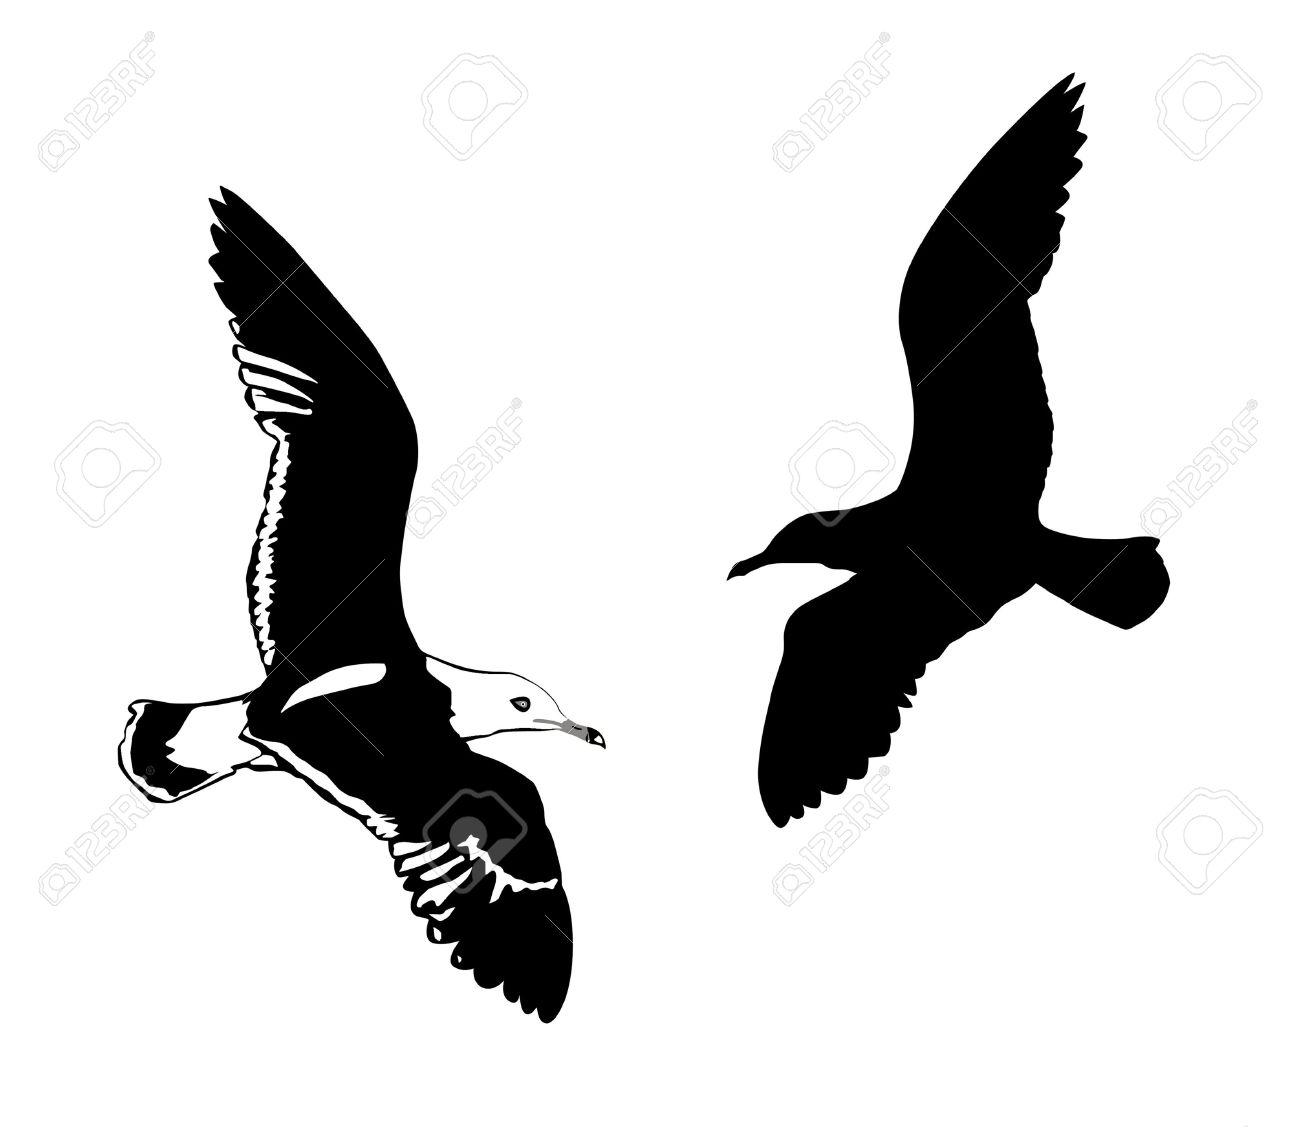 113 Albatross Icon Stock Vector Illustration And Royalty Free.